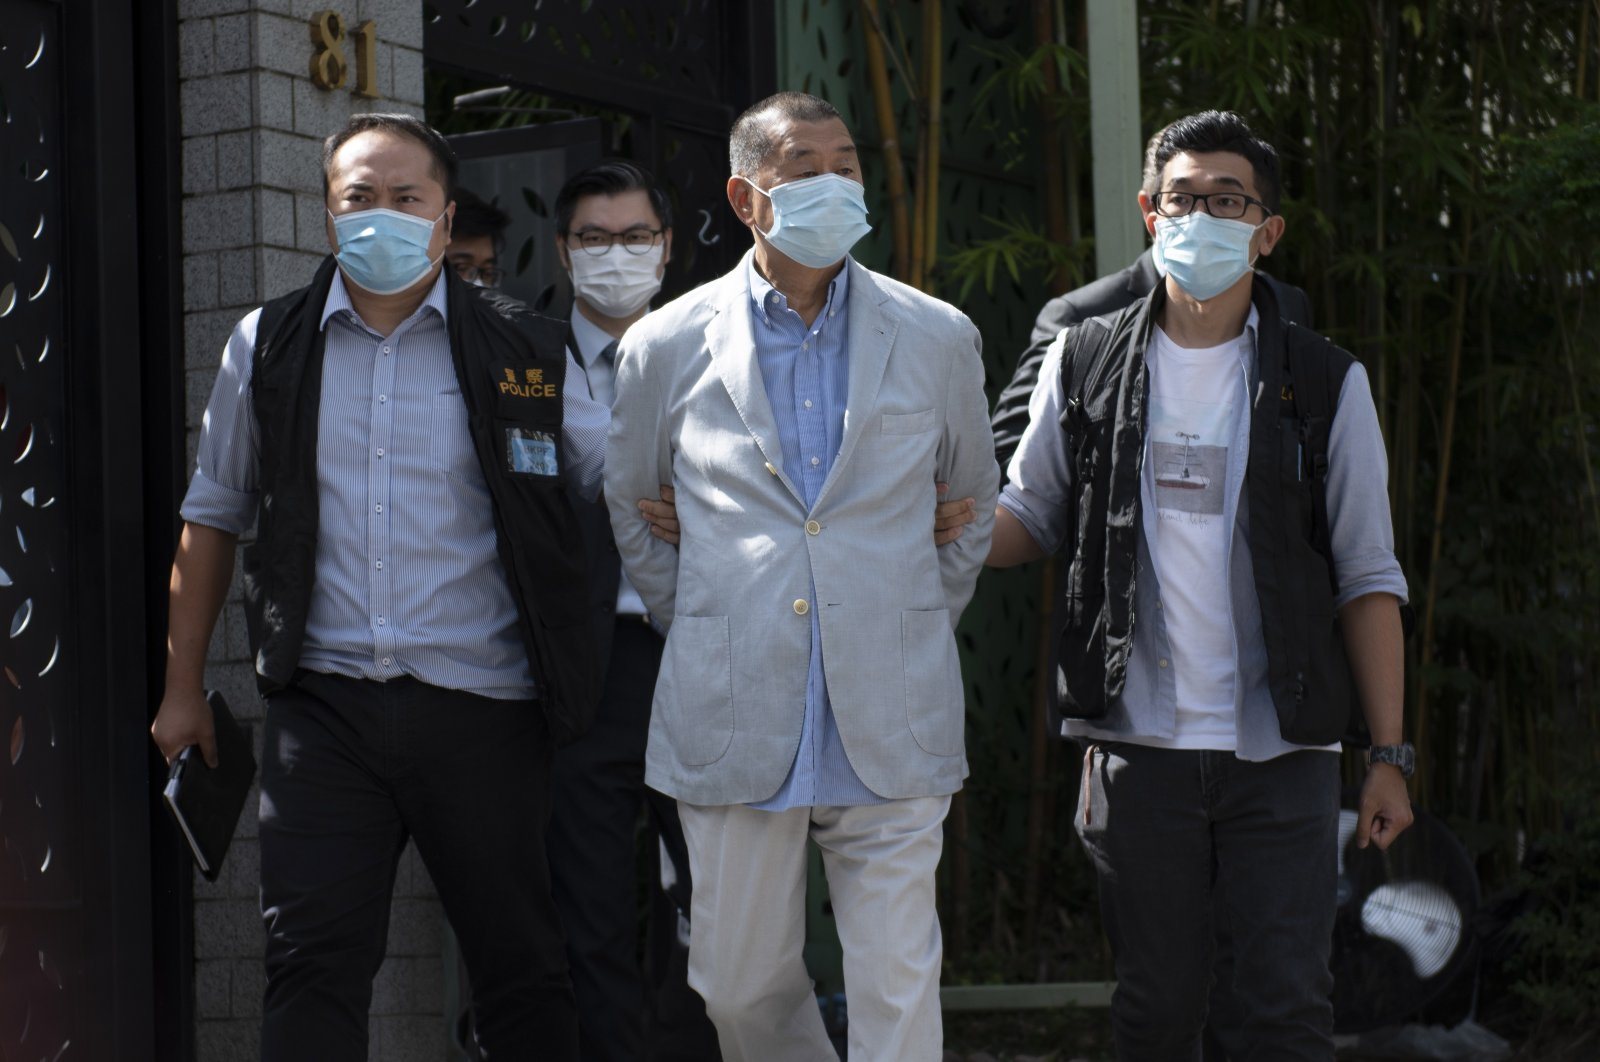 Jimmy Lai (C), media tycoon and founder of Apple Daily, is escorted by police after he was arrested at his home in Hong Kong, China, Aug. 10, 2020. (EPA Photo)